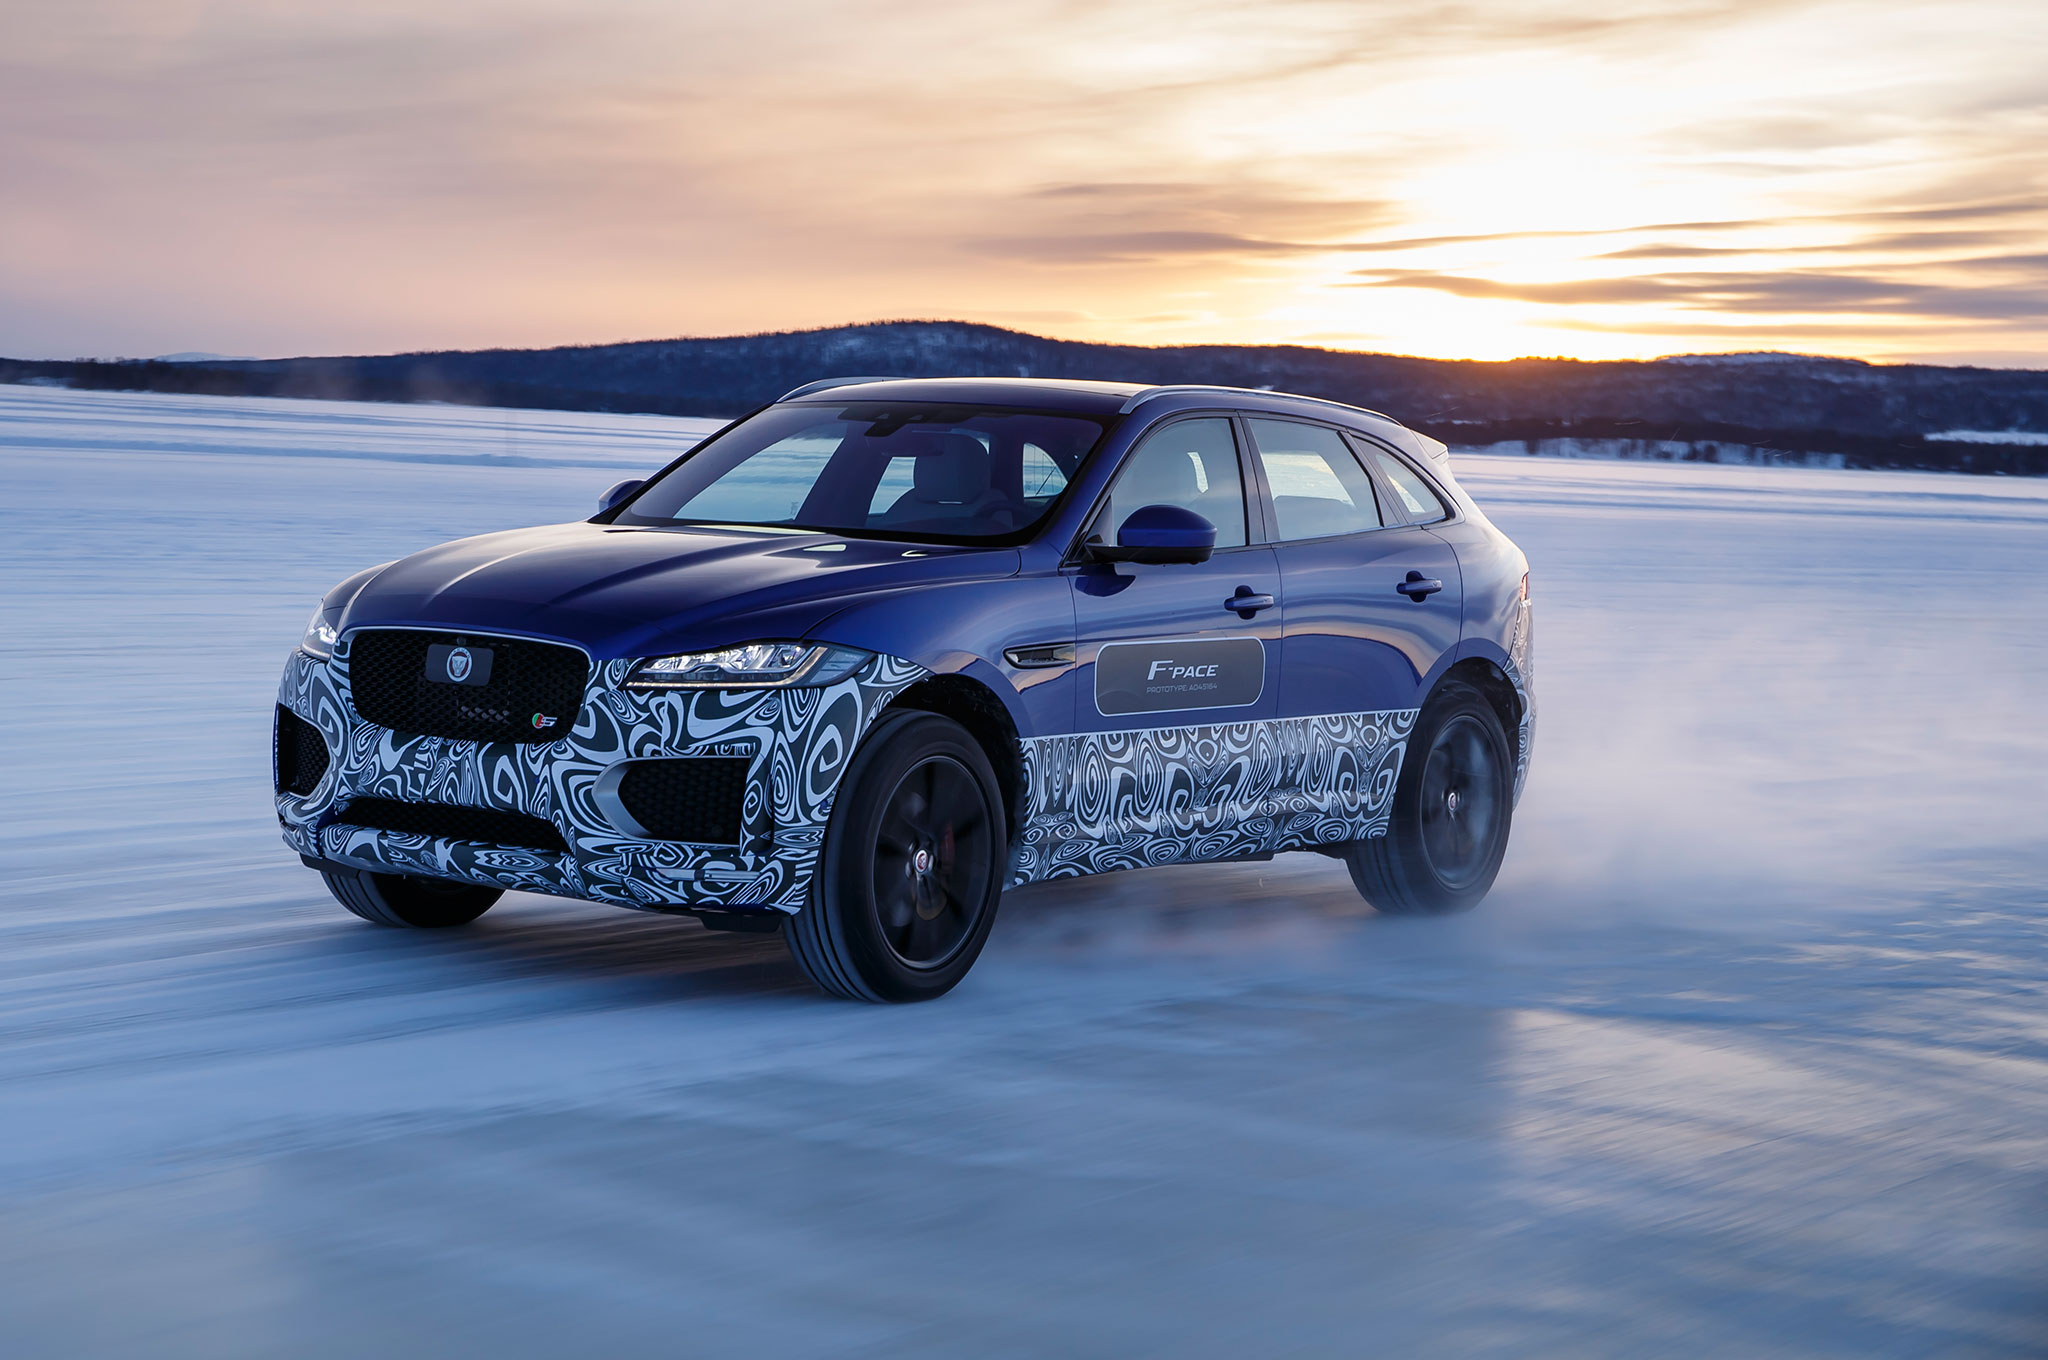 2017 Jaguar F Pace Prototype Front Three Quarter In Motion 201